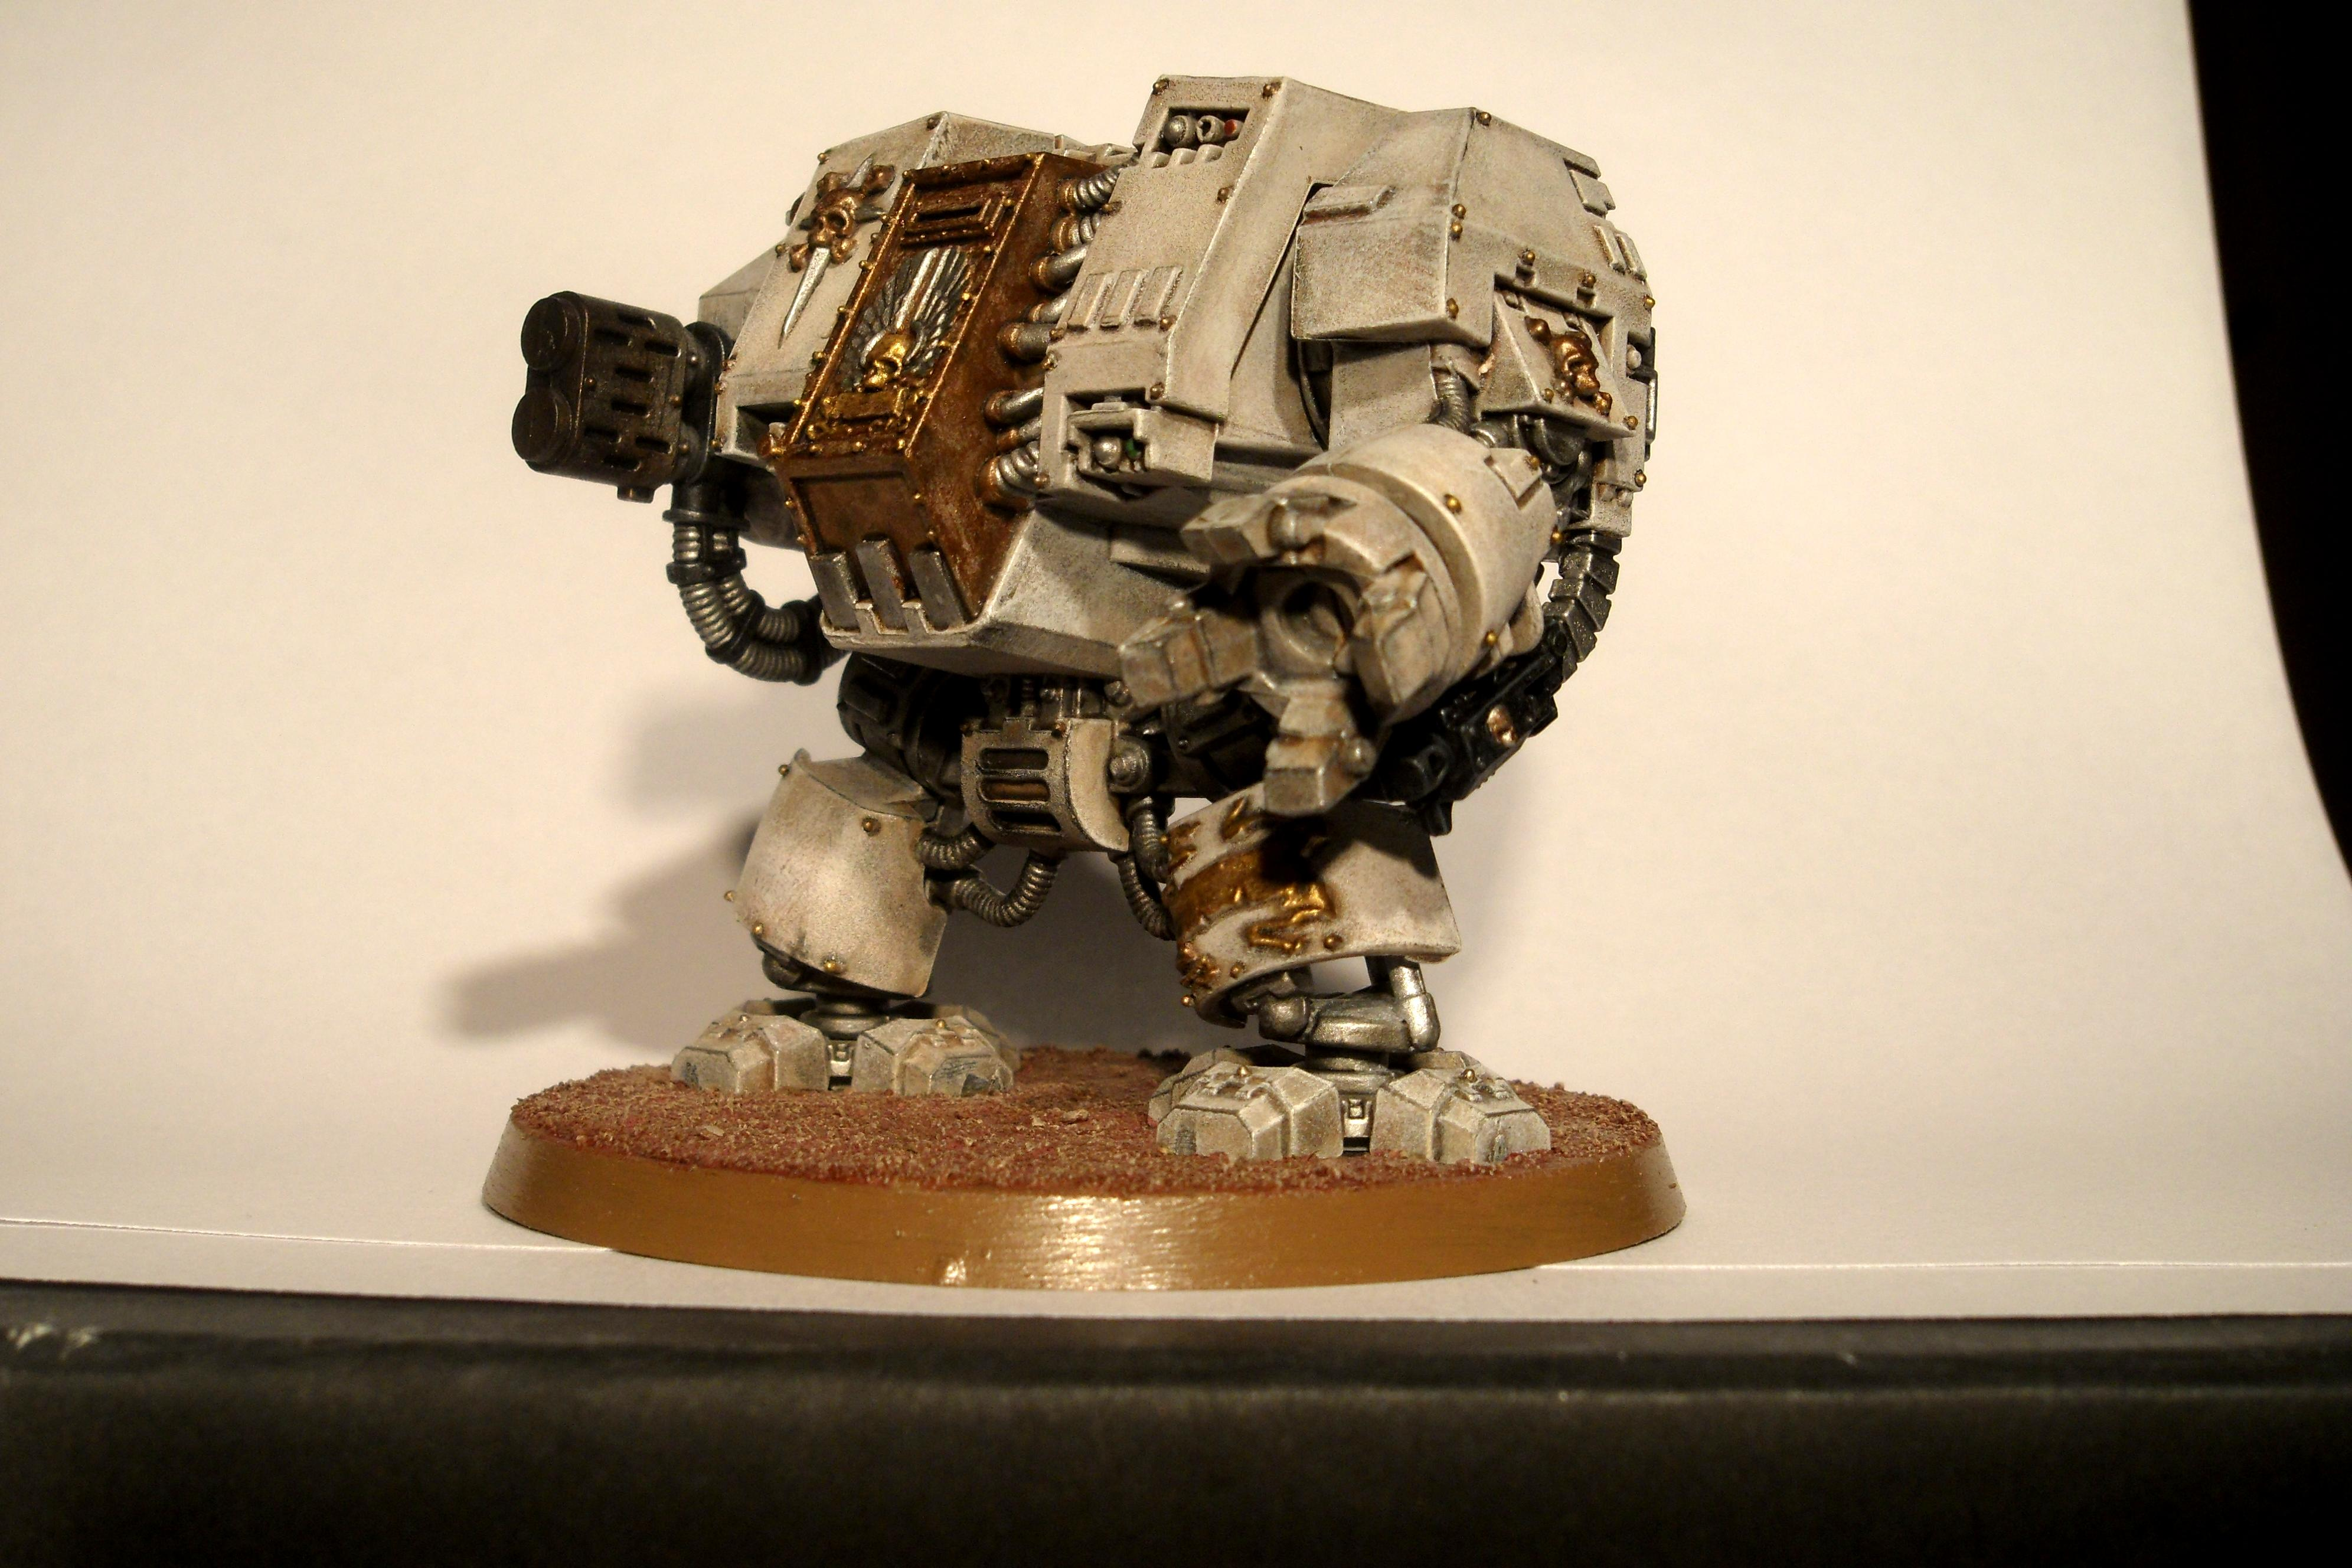 Conversion, Dreadnought, Space Marines, Warhammer 40,000